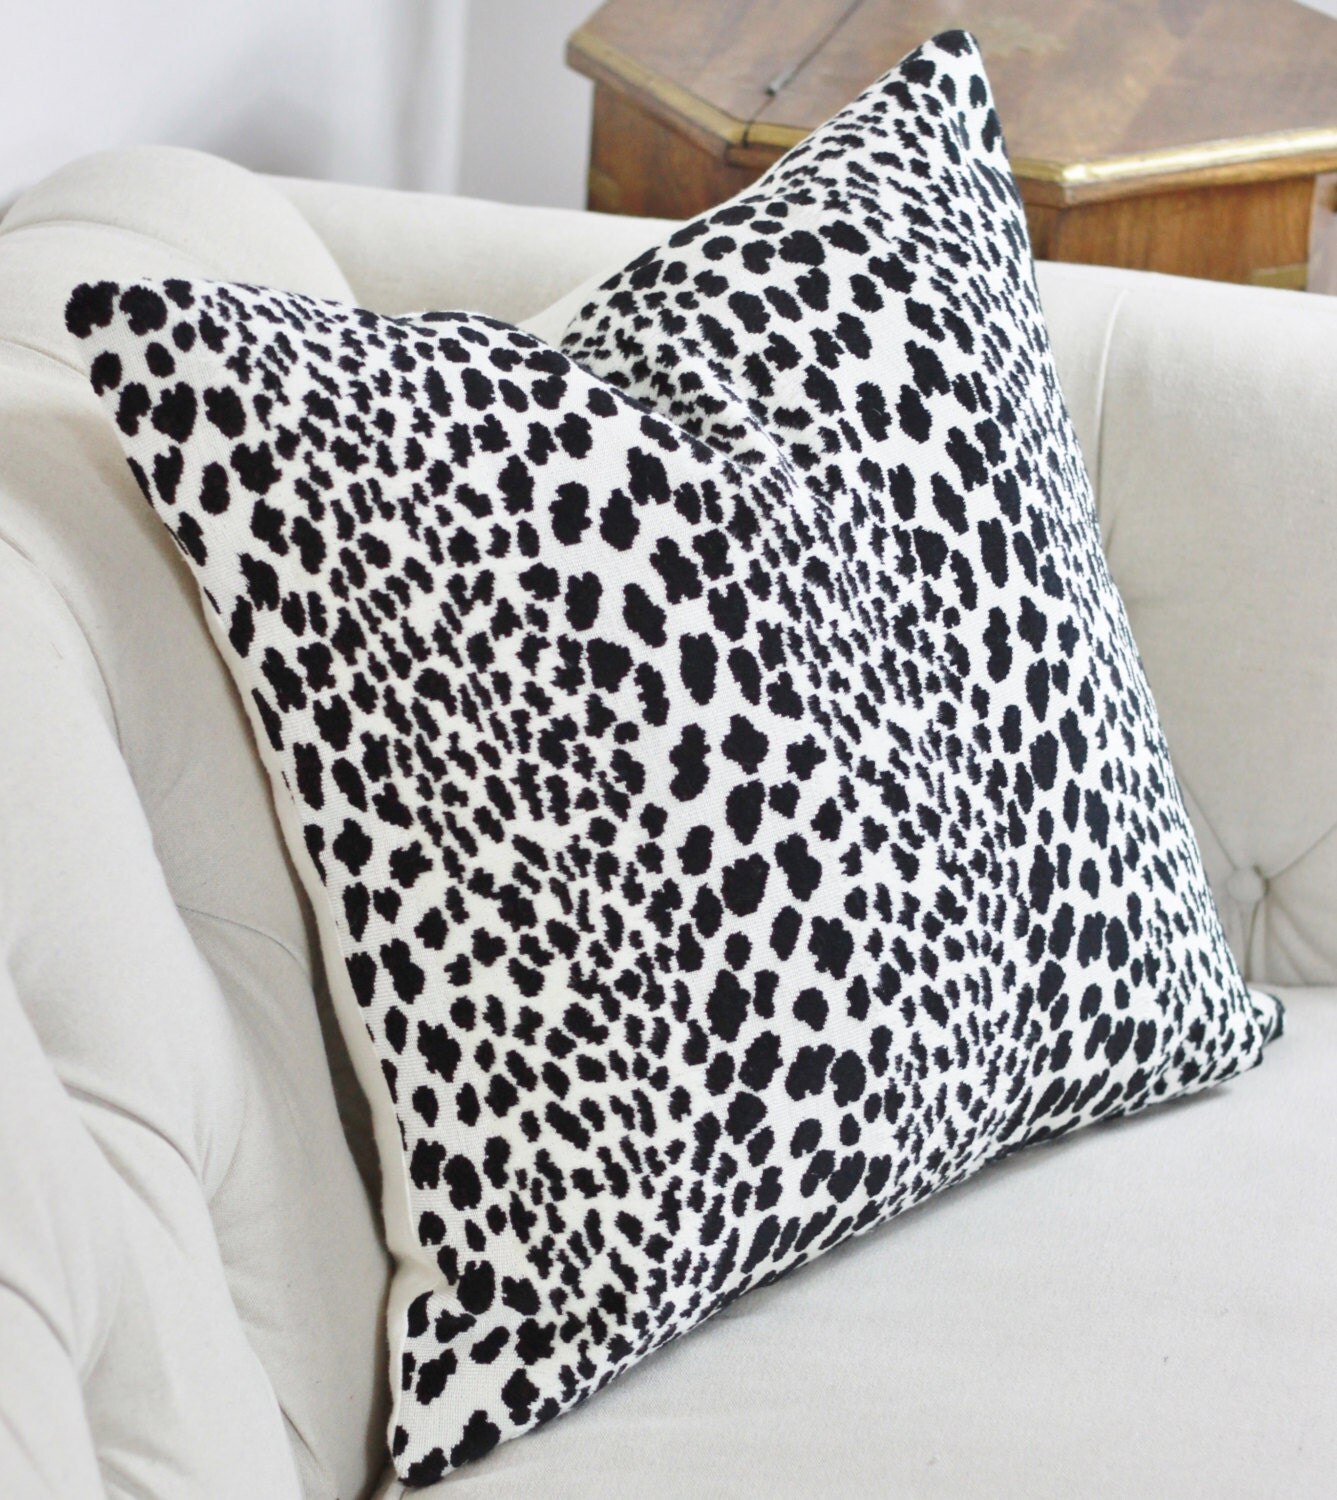 Velvet Animal Print Pillows : Animal Print Pillow Spotted Velvet Pillow Cover Animal